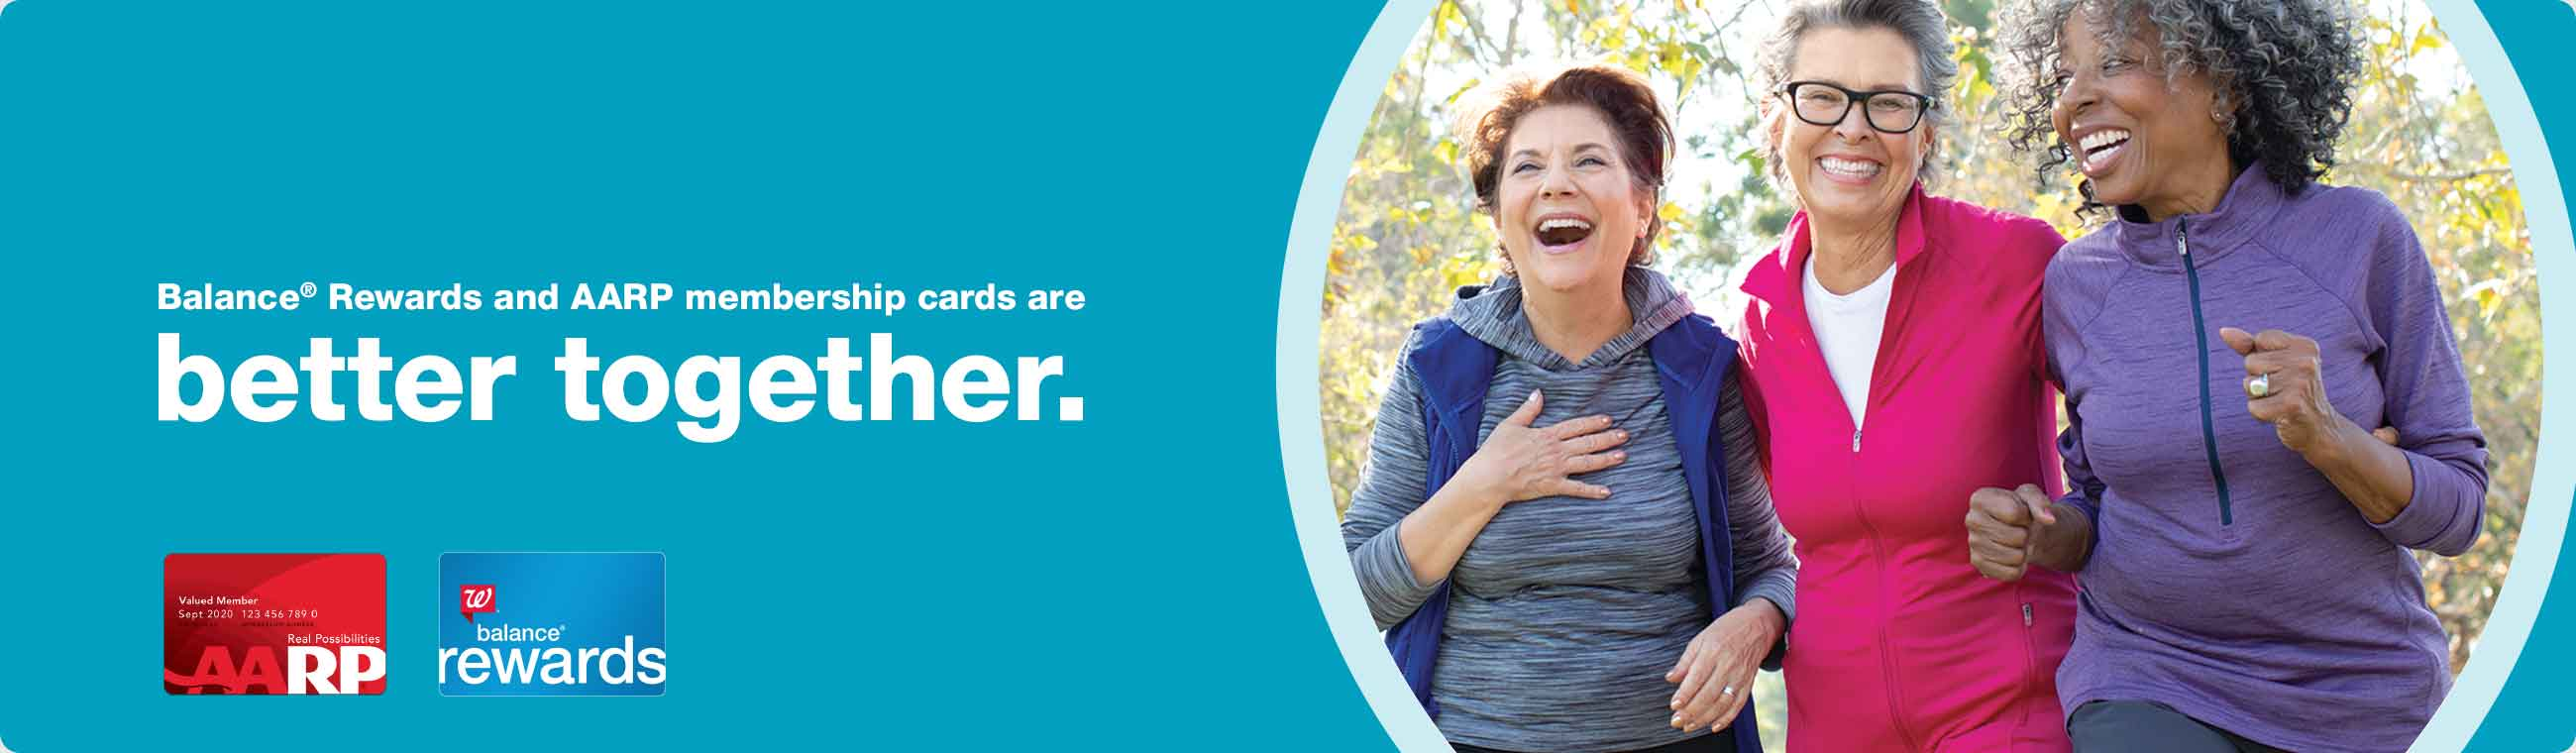 Balance® Rewards and AARP membership cards are better together.